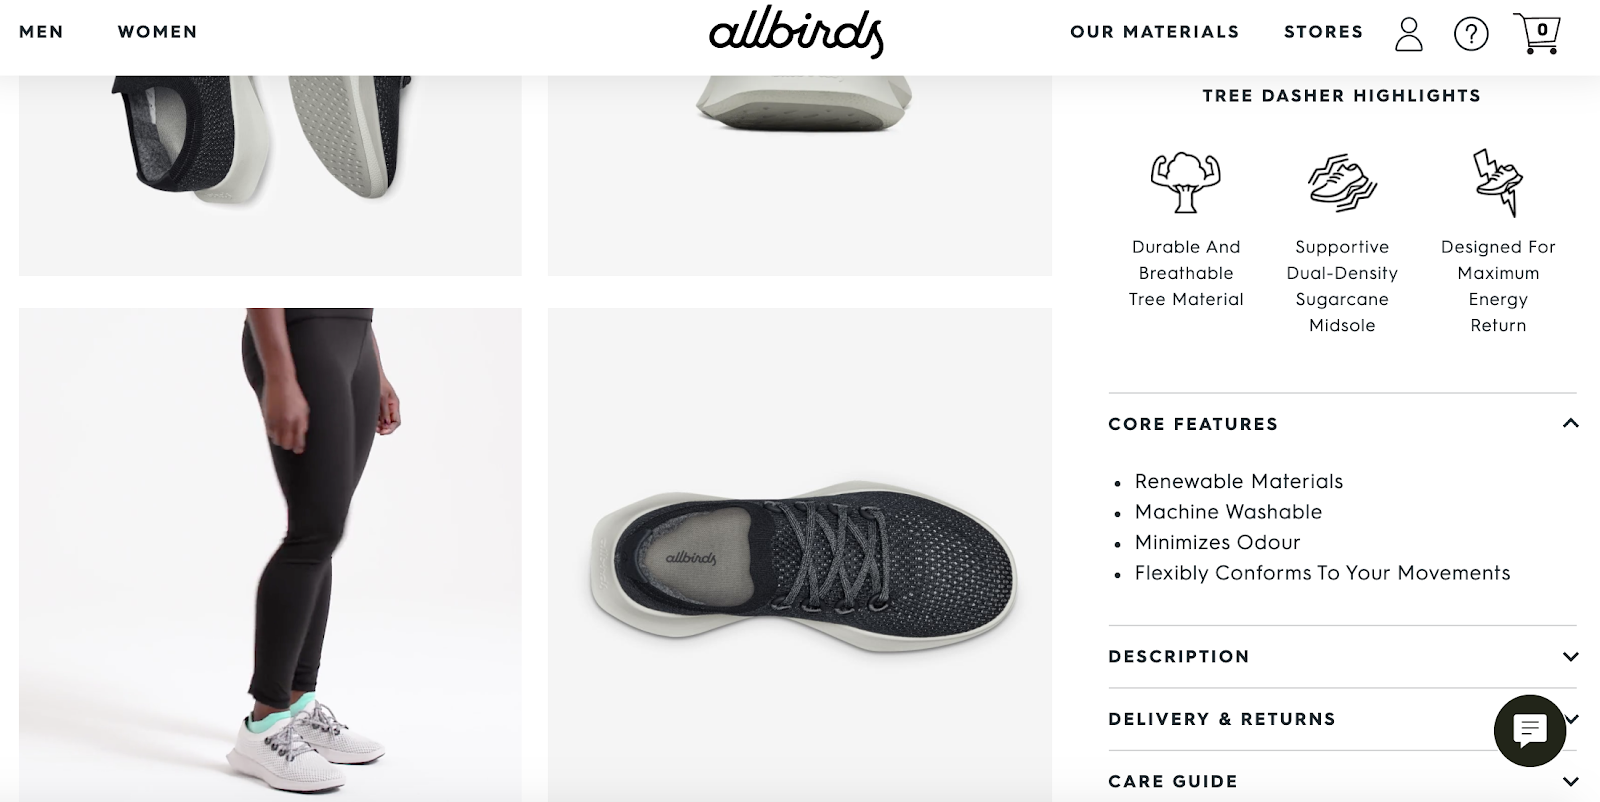 best product detail page examples allbirds